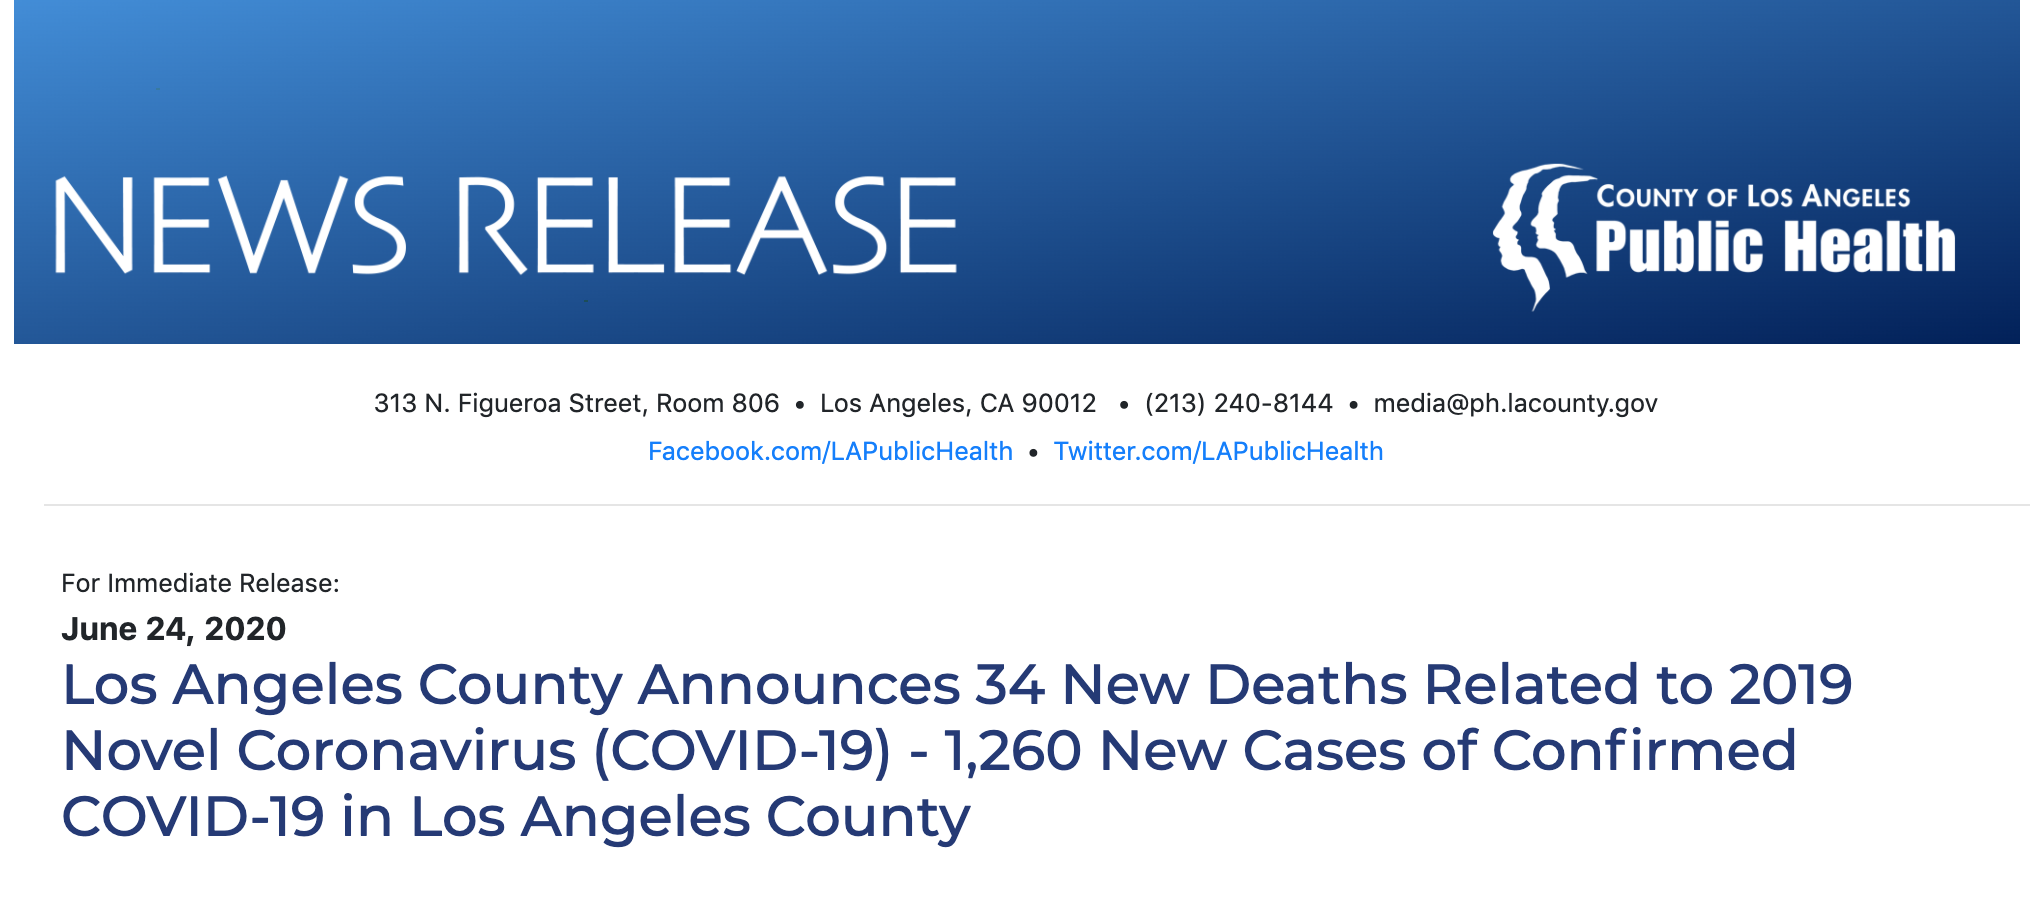 Los Angeles County Announces 34 New Deaths Related to 2019 Novel Coronavirus (COVID-19) - 1,260 New Cases